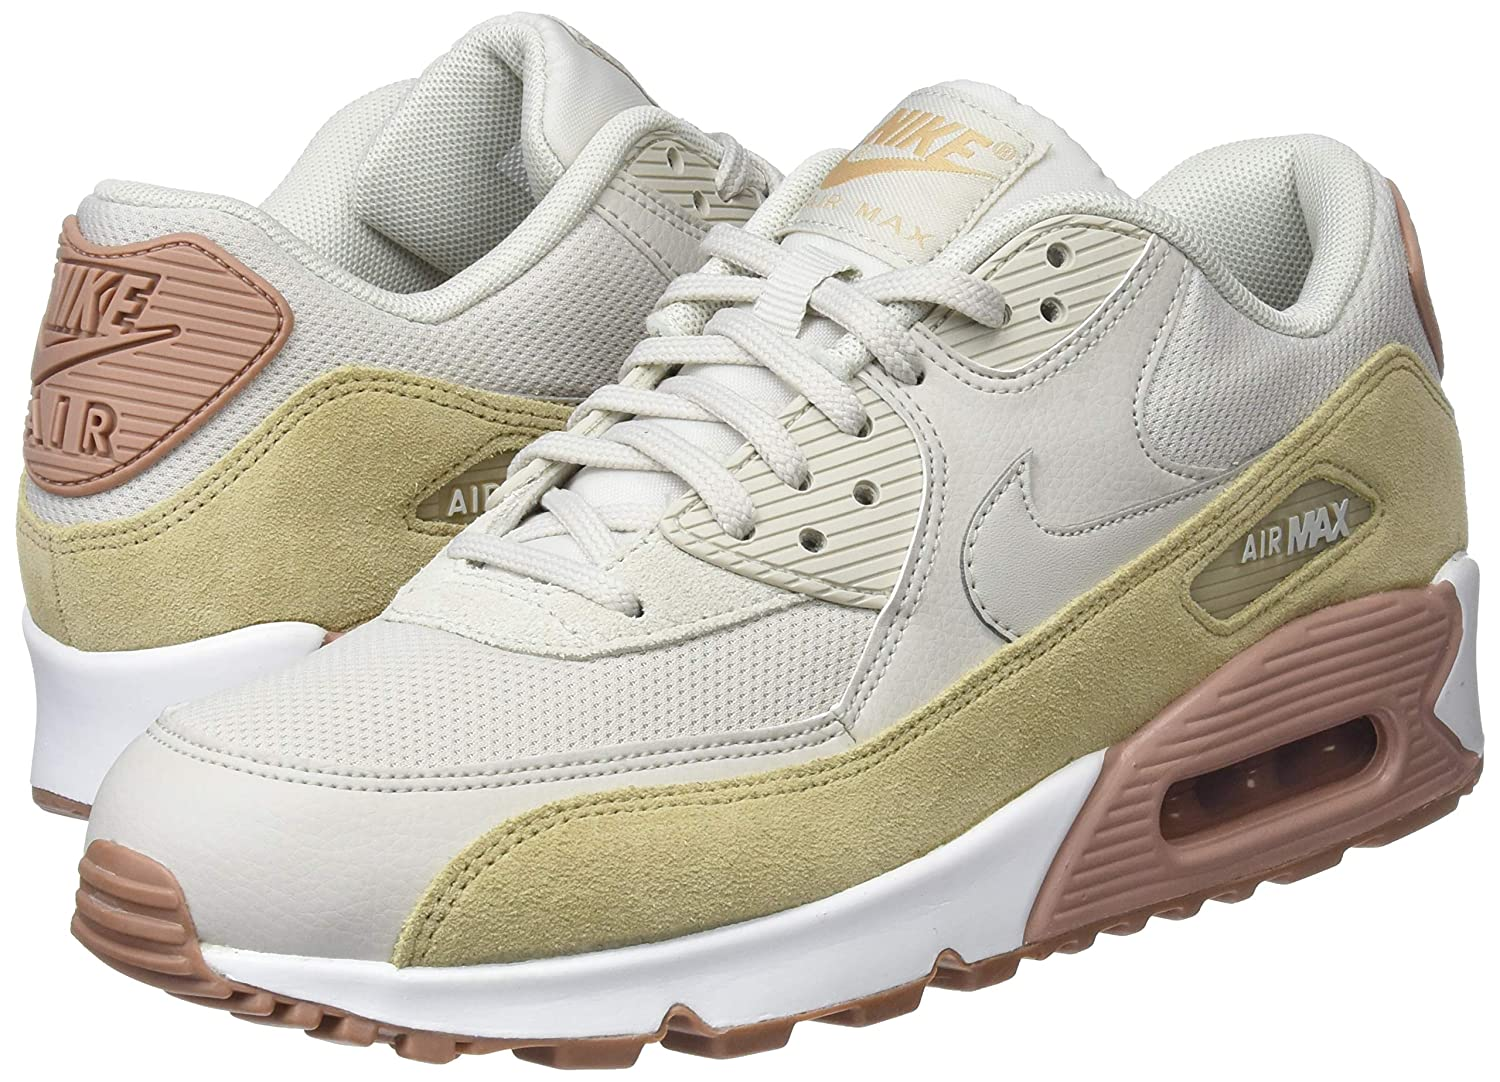 lowest price 31b09 2a945 Amazon.com | Nike WMNS Air Max 90 Lifestyle Women Sneakers Grey/Brown/Dark  Brown-White New 325213-046 - 10 | Shoes